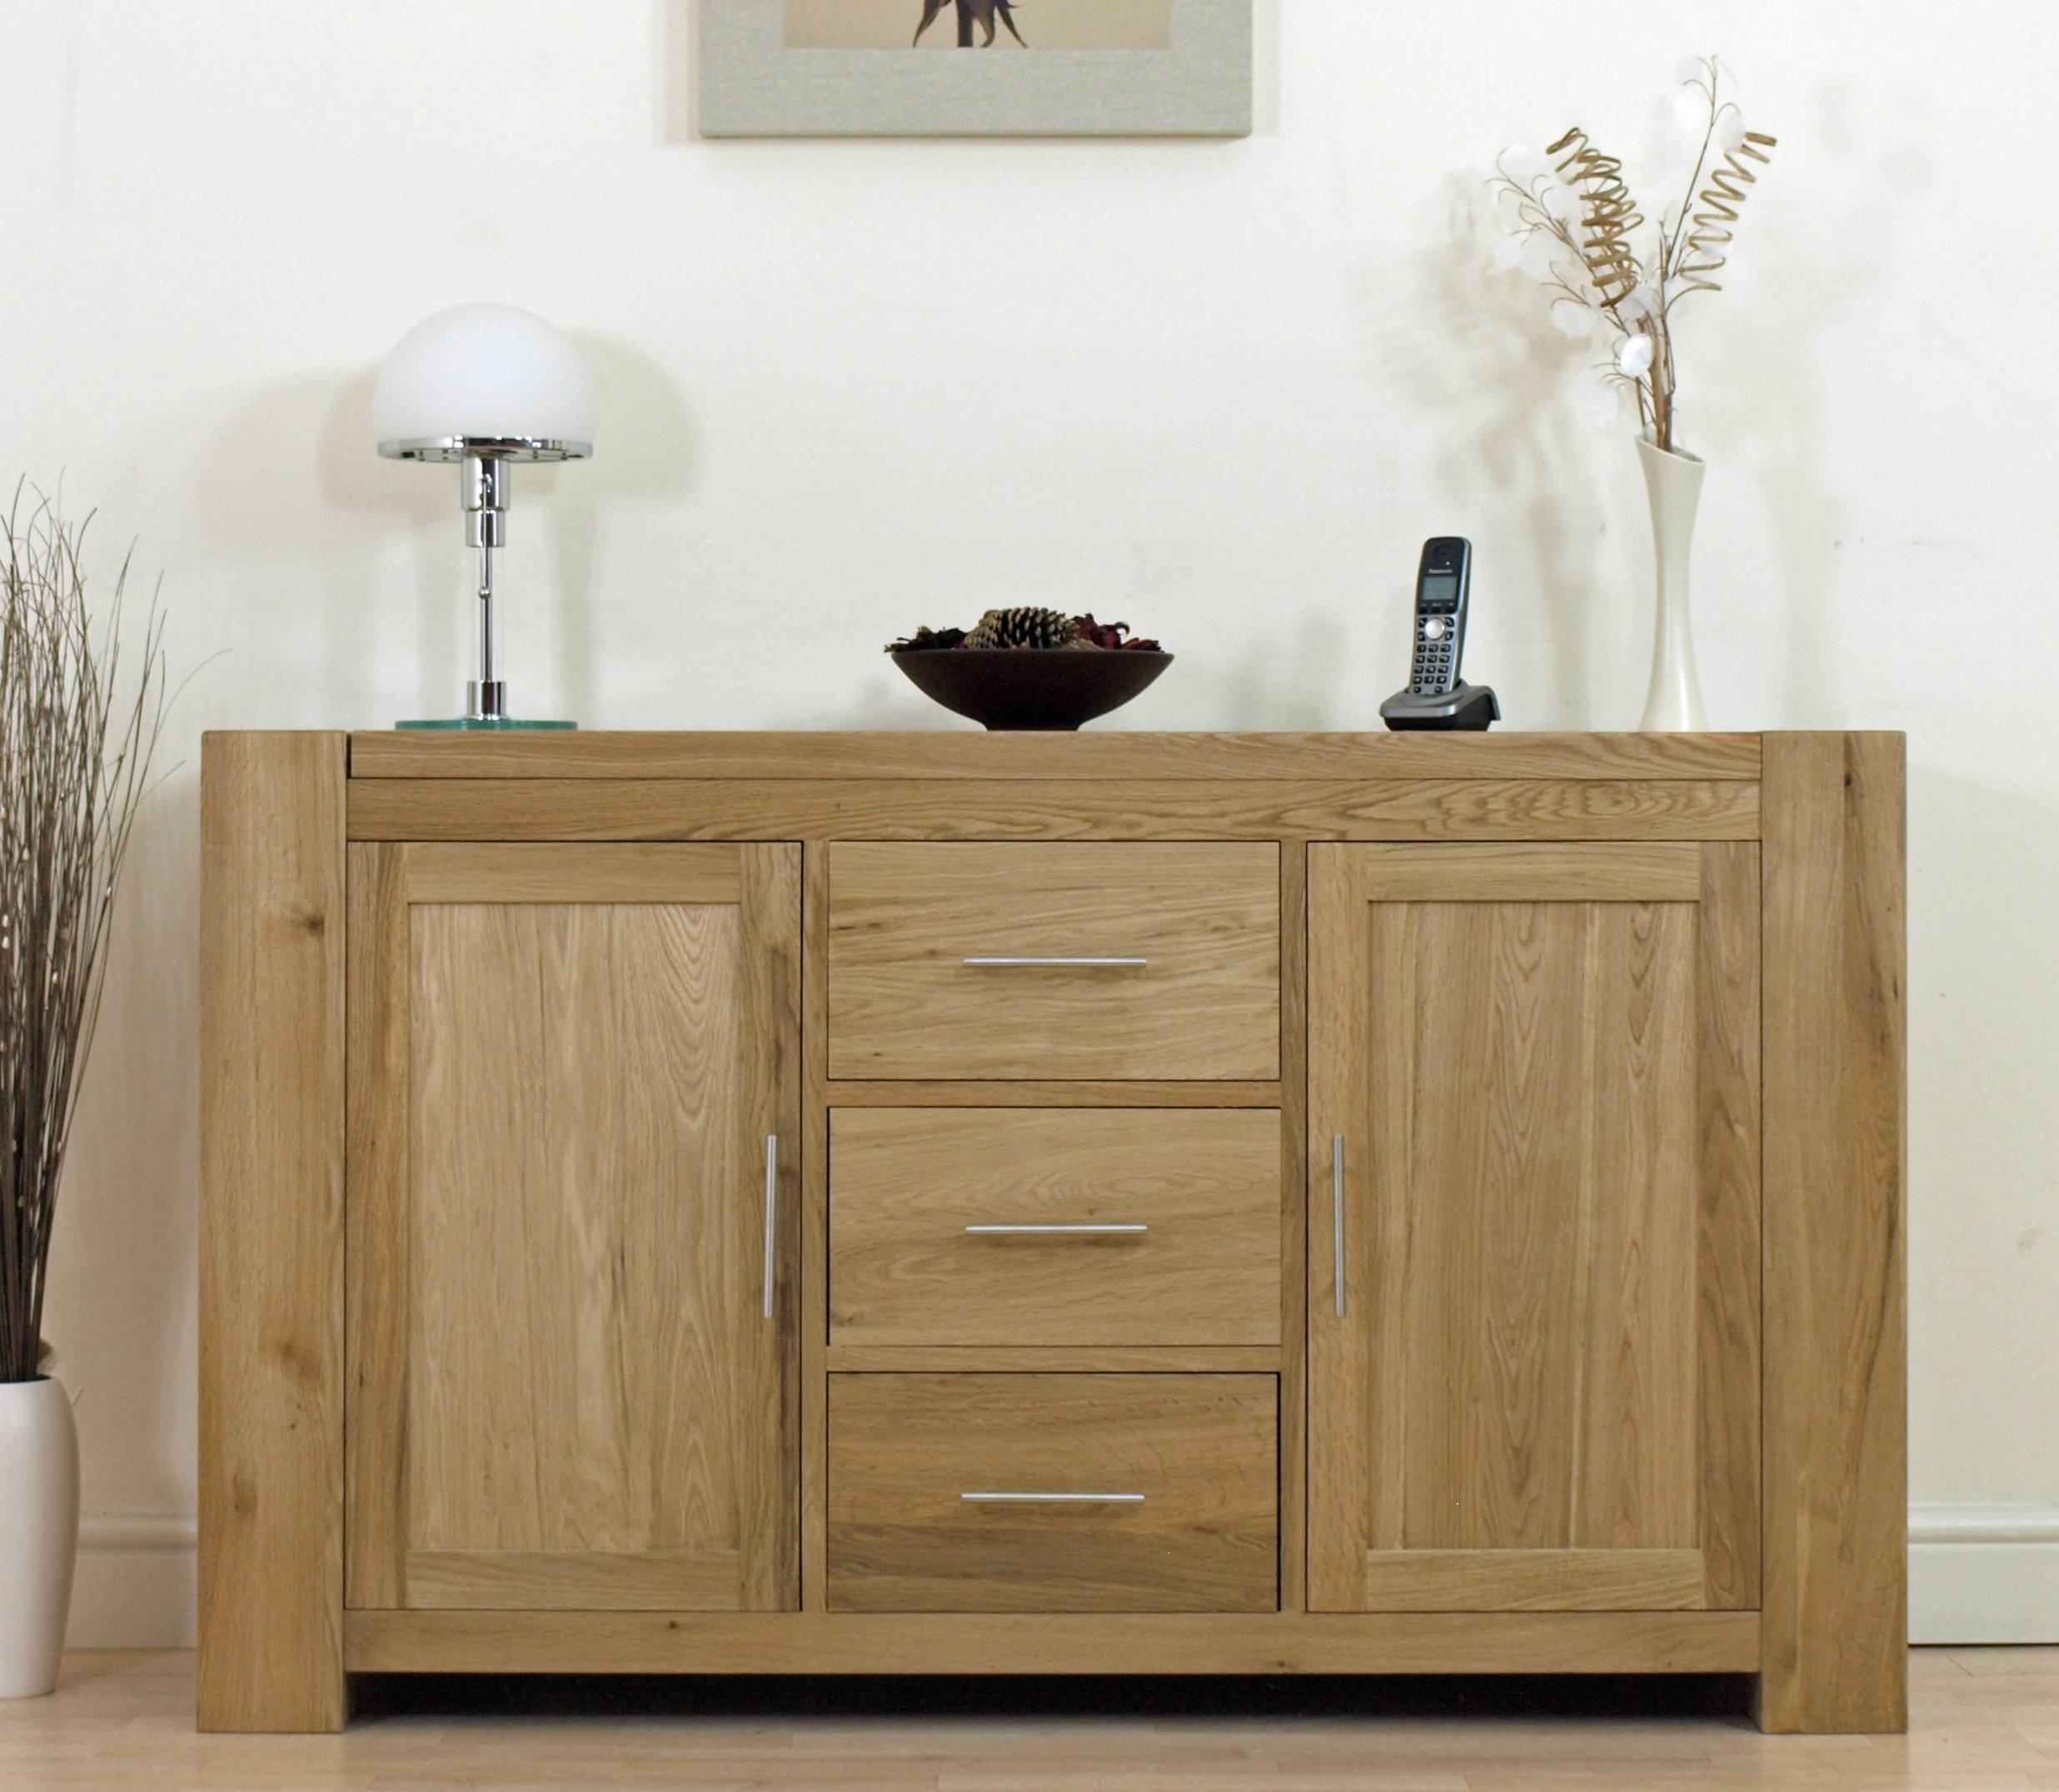 Solid Oak Sideboard Is Your First Choice Living Room Furniture – Hgnv Inside Oak Sideboards (View 16 of 30)